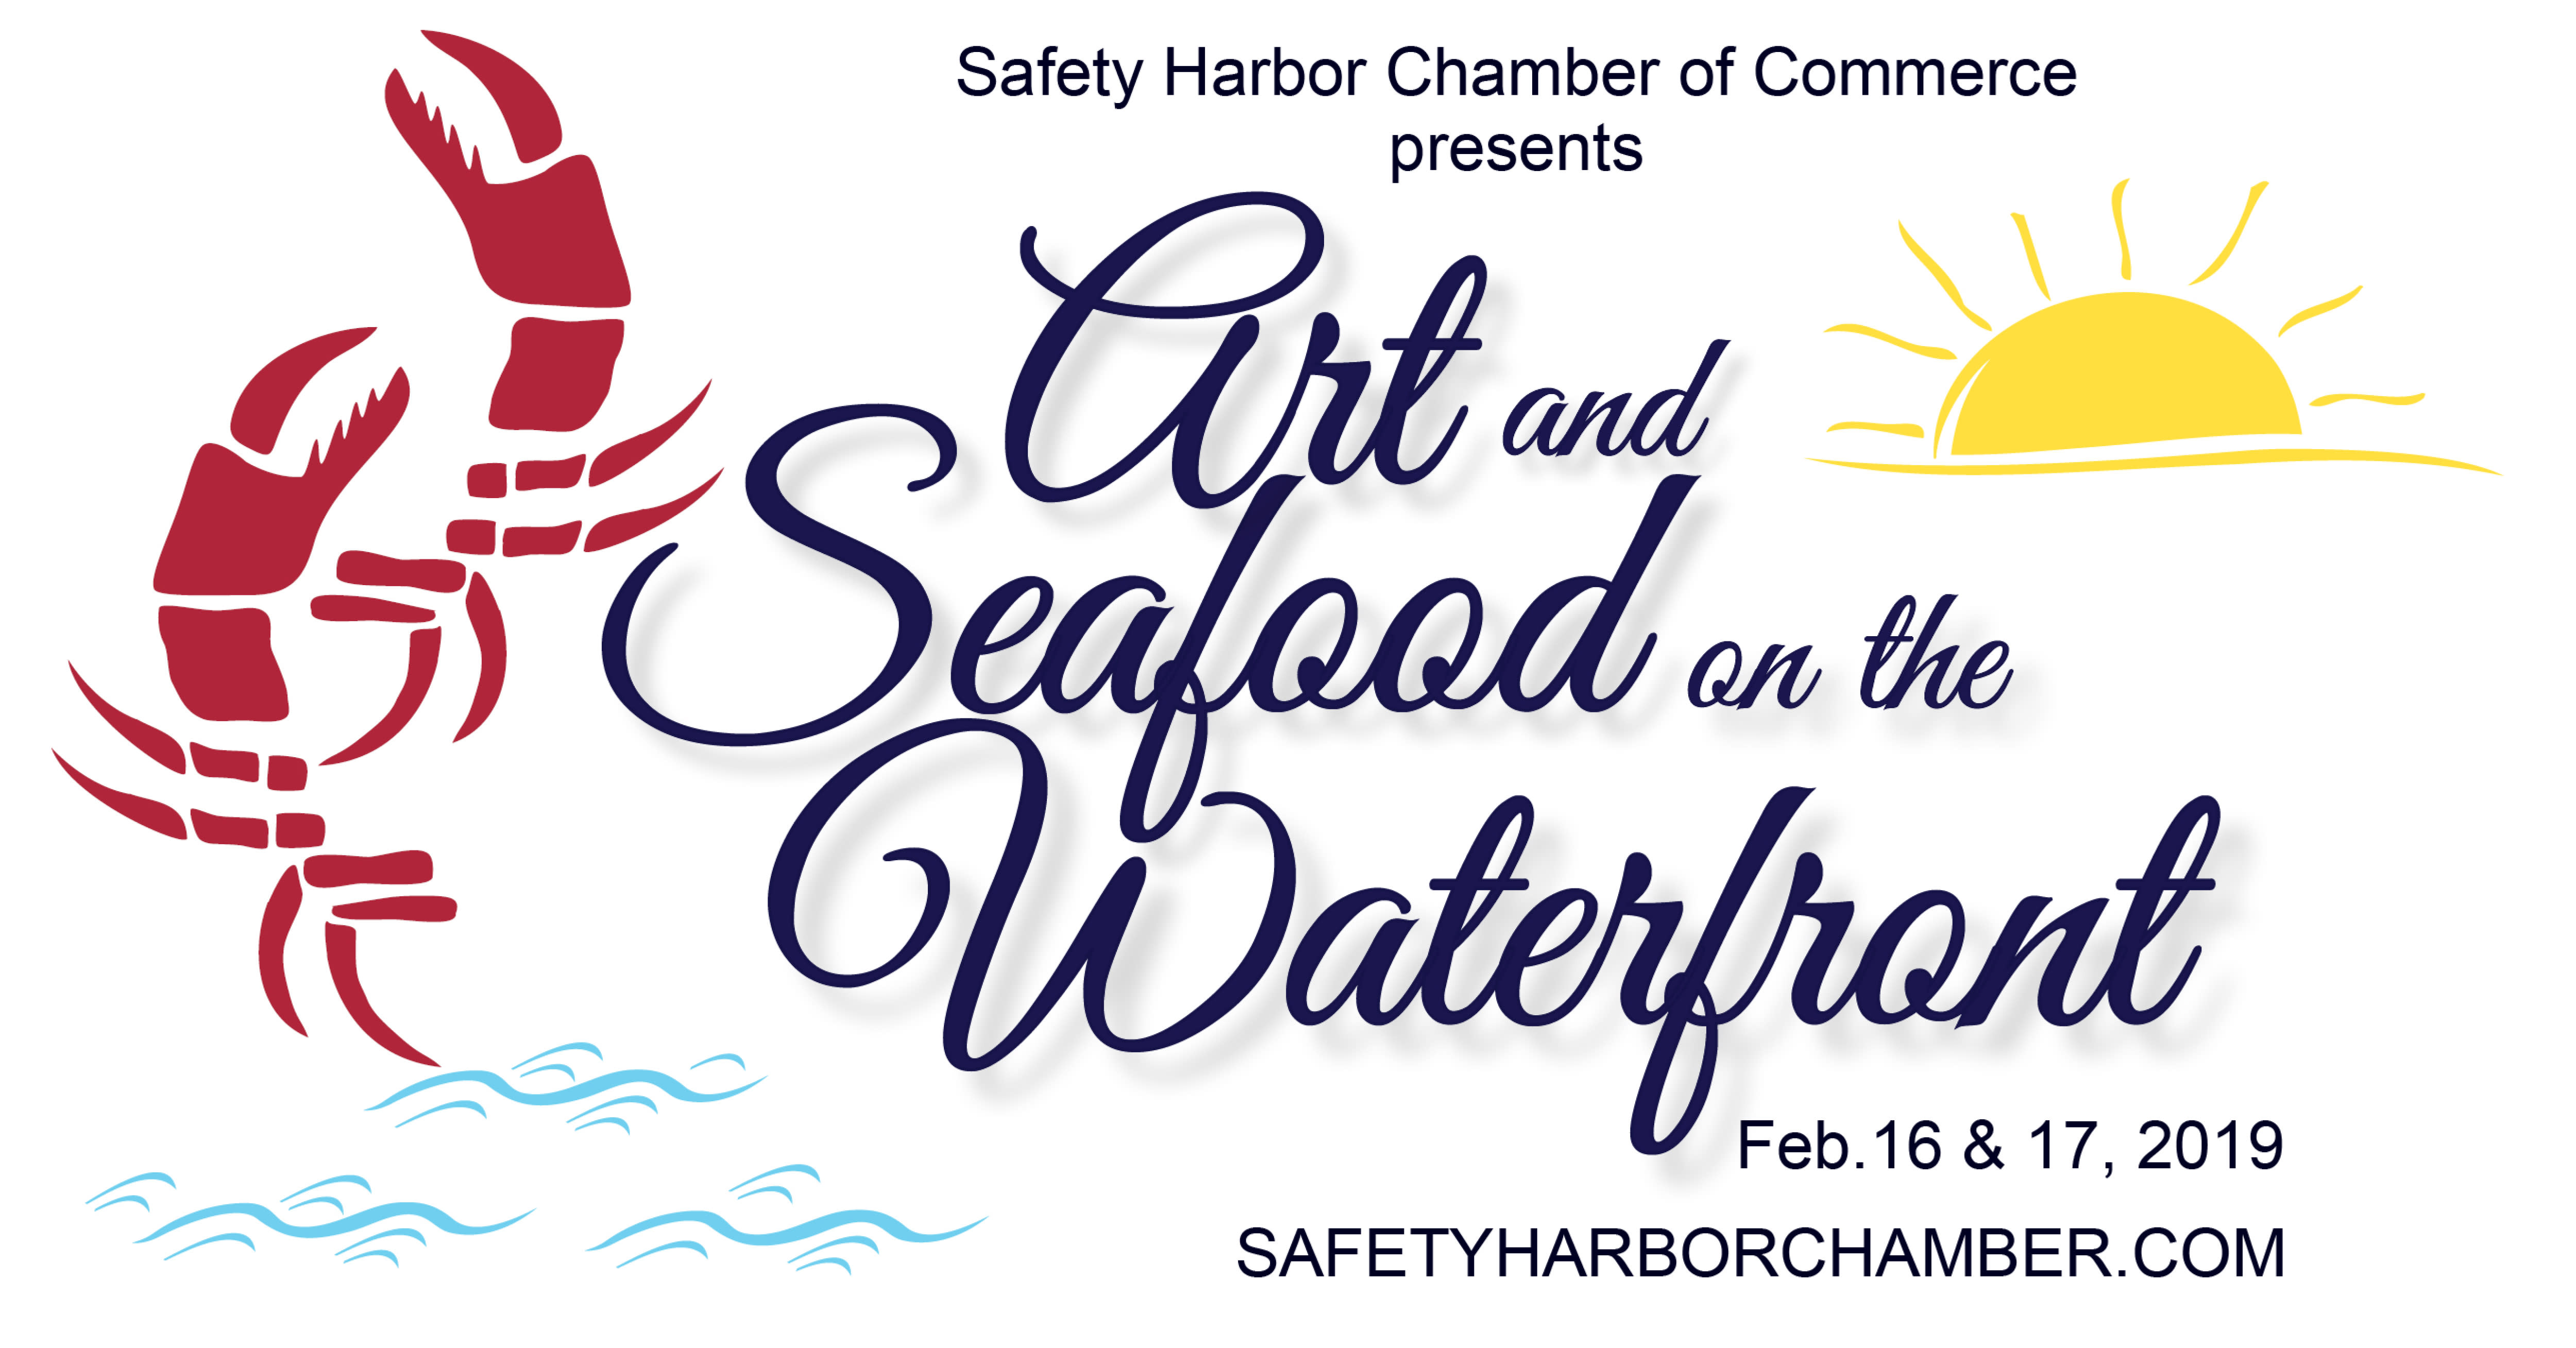 Safety Harbor's Art & Seafood on the Waterfront